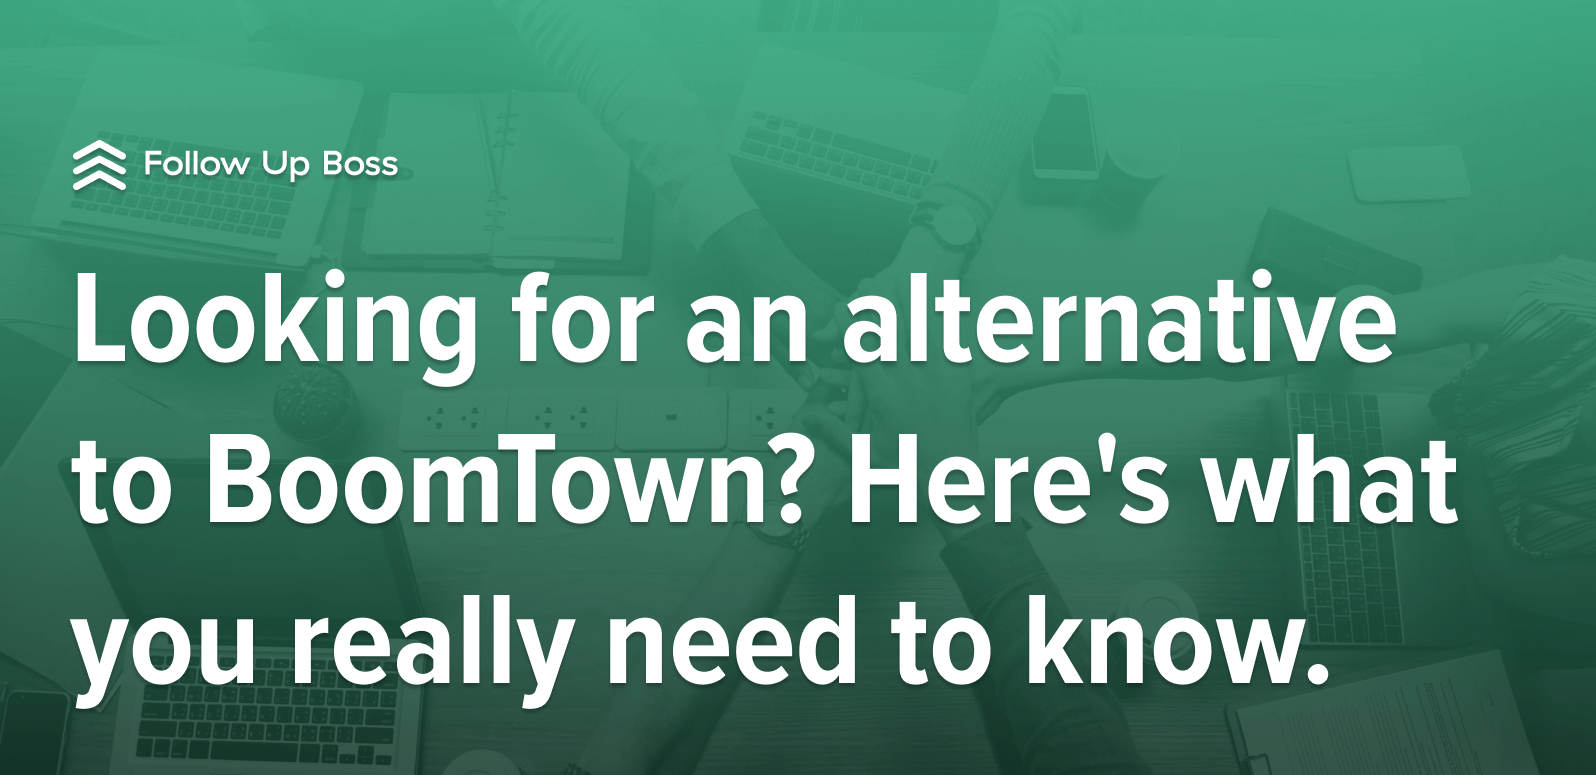 Looking for an alternative to BoomTown? Here's what you really need to know.